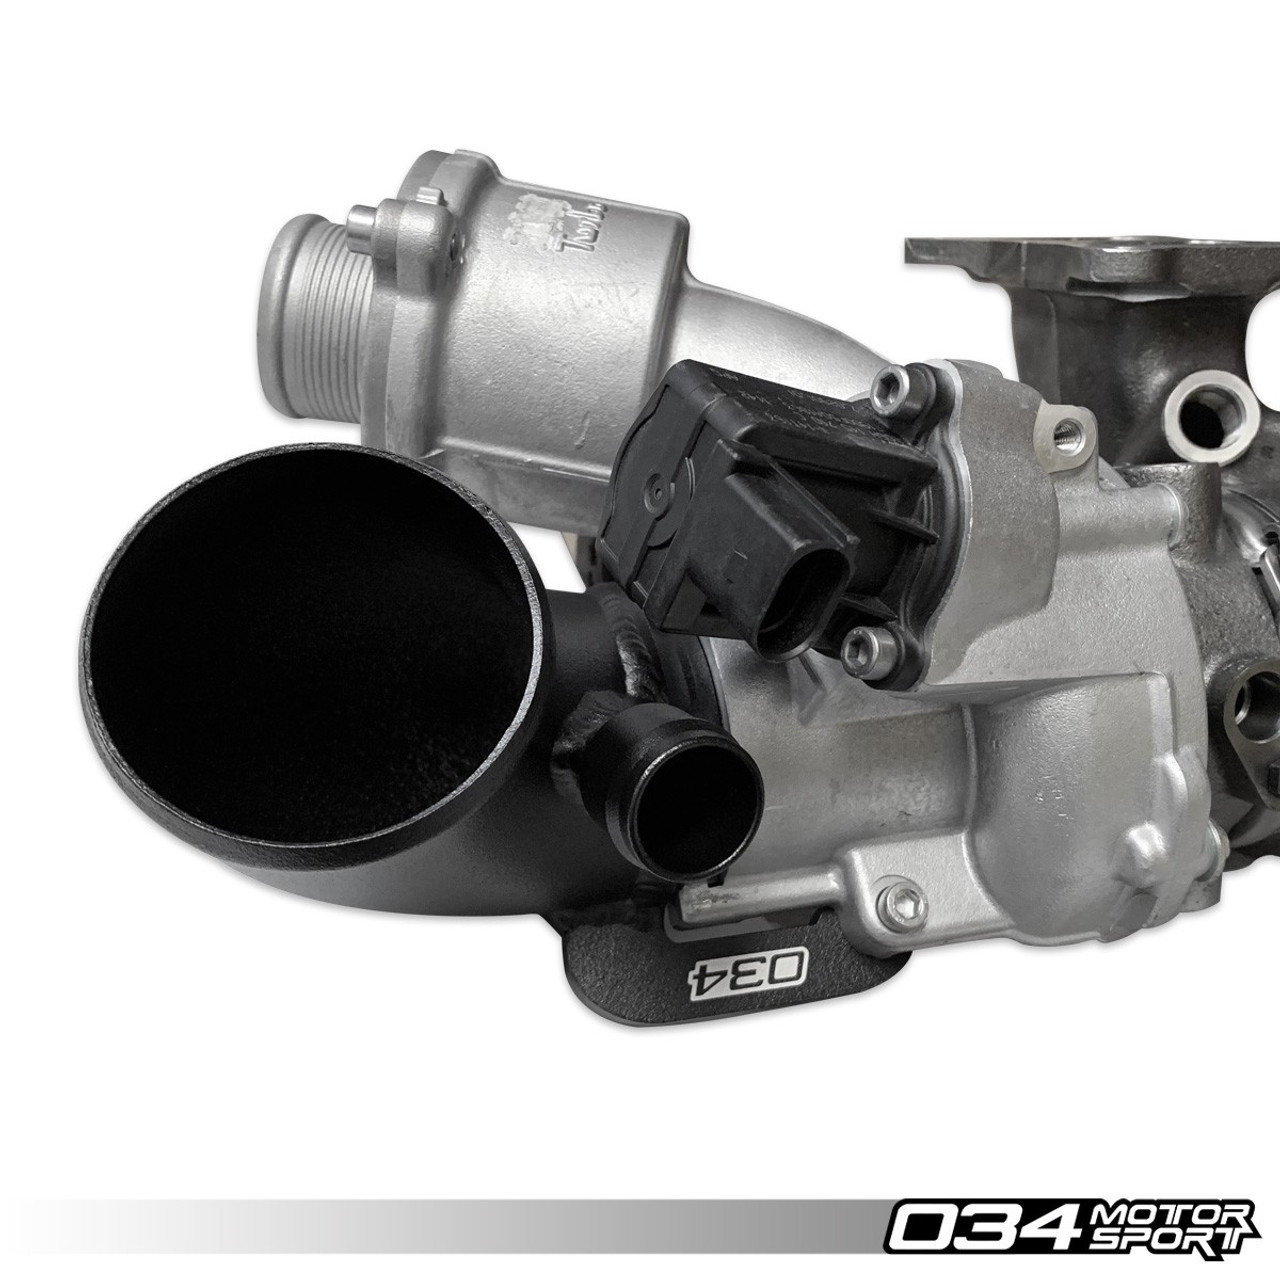 034Motorsport Turbo Inlet Pipe for 1.8T & 2.0T MQB